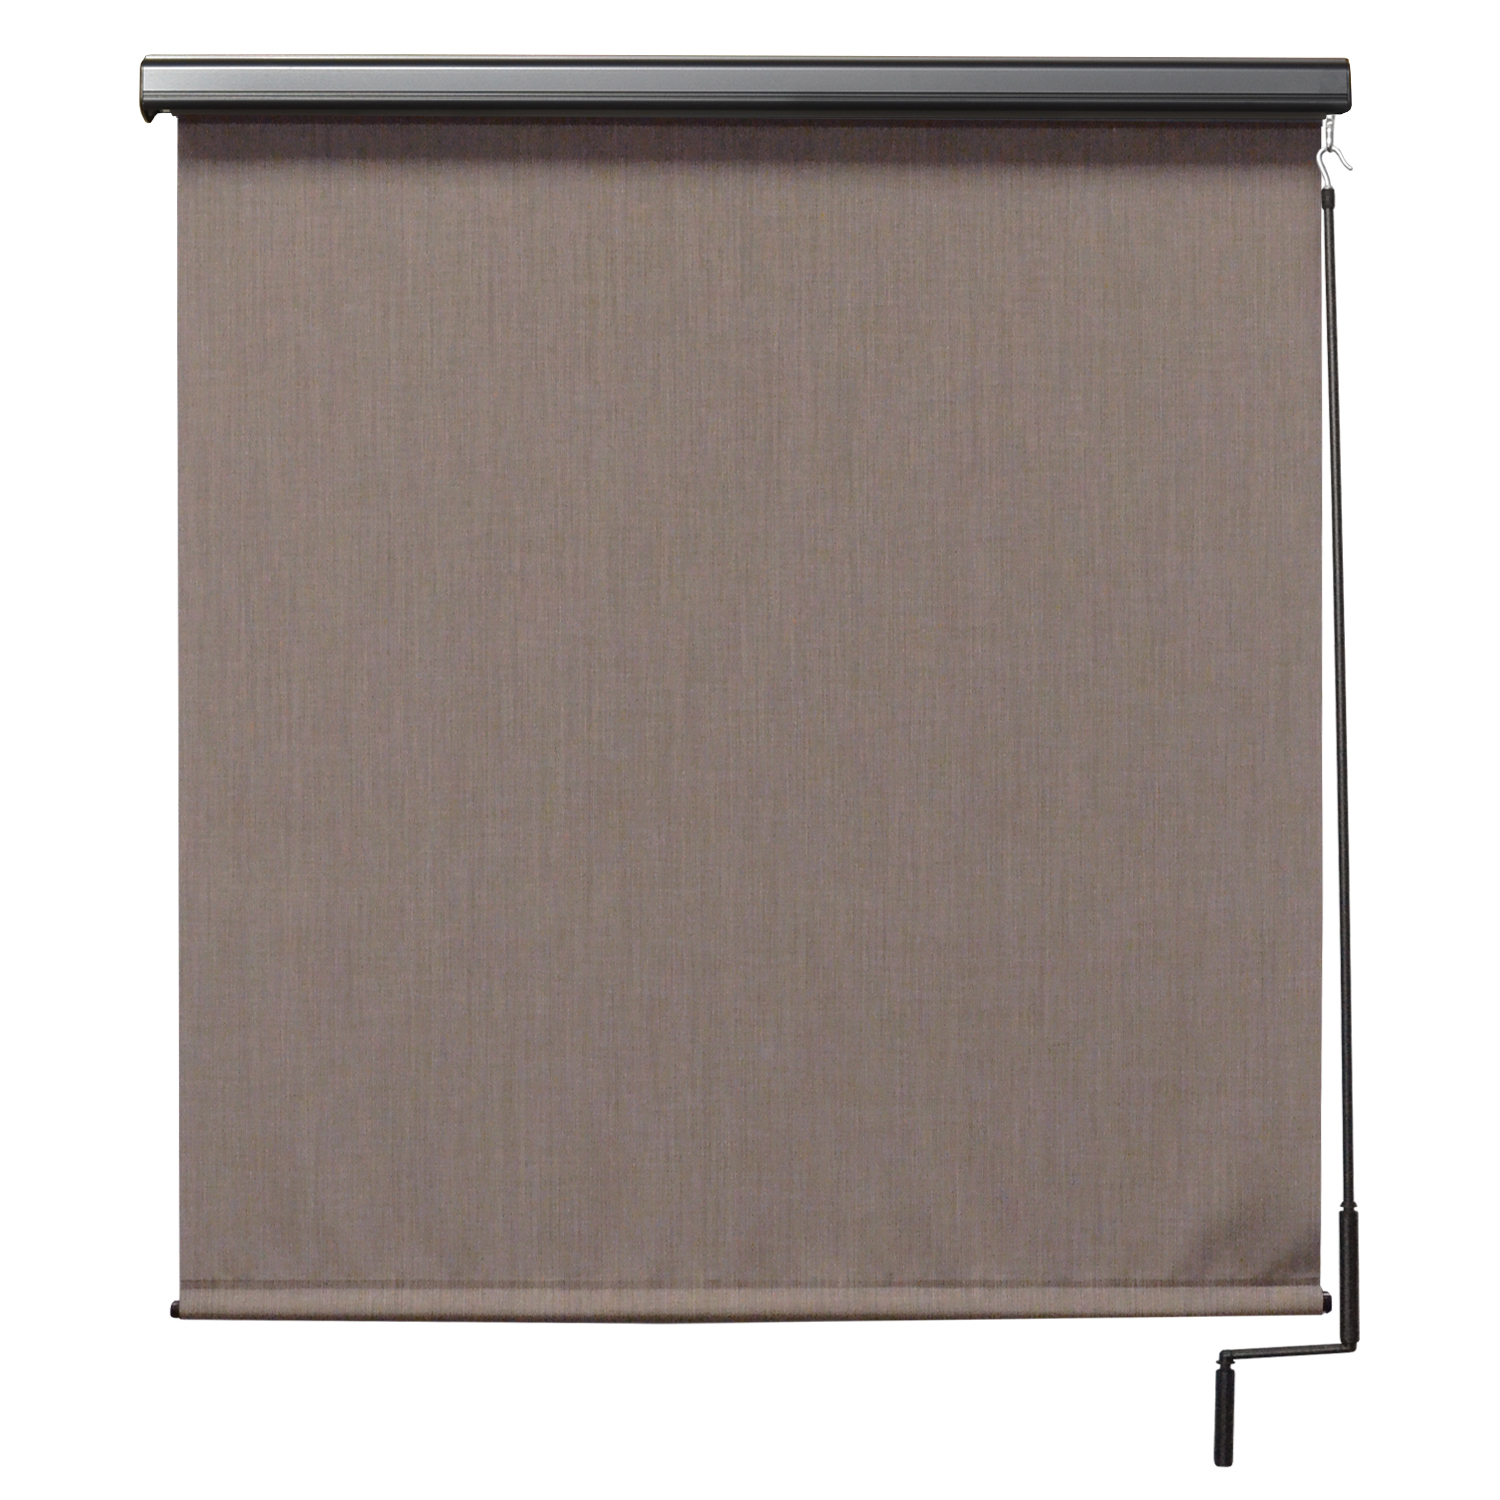 Premier Cordless Outdoor Sun Shade with Protective Valance, 7' W x 8' L, Sandstone